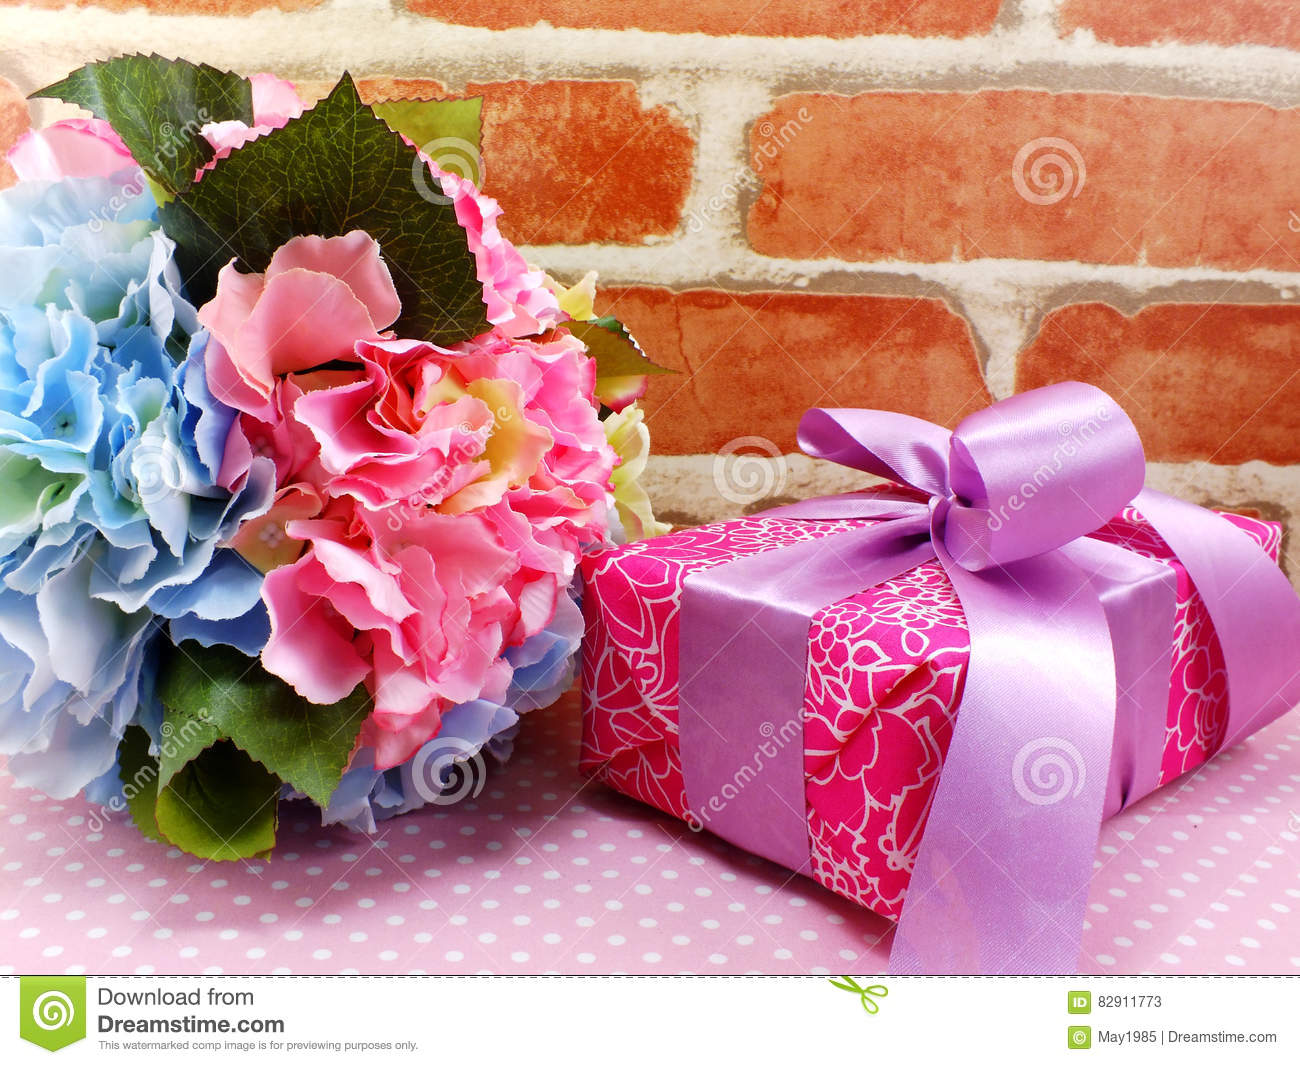 Gift box present with pink ribbon bow and beautiful flowers gift box present with pink ribbon bow and beautiful flowers background stock image image of celebration bouquet 82911773 izmirmasajfo